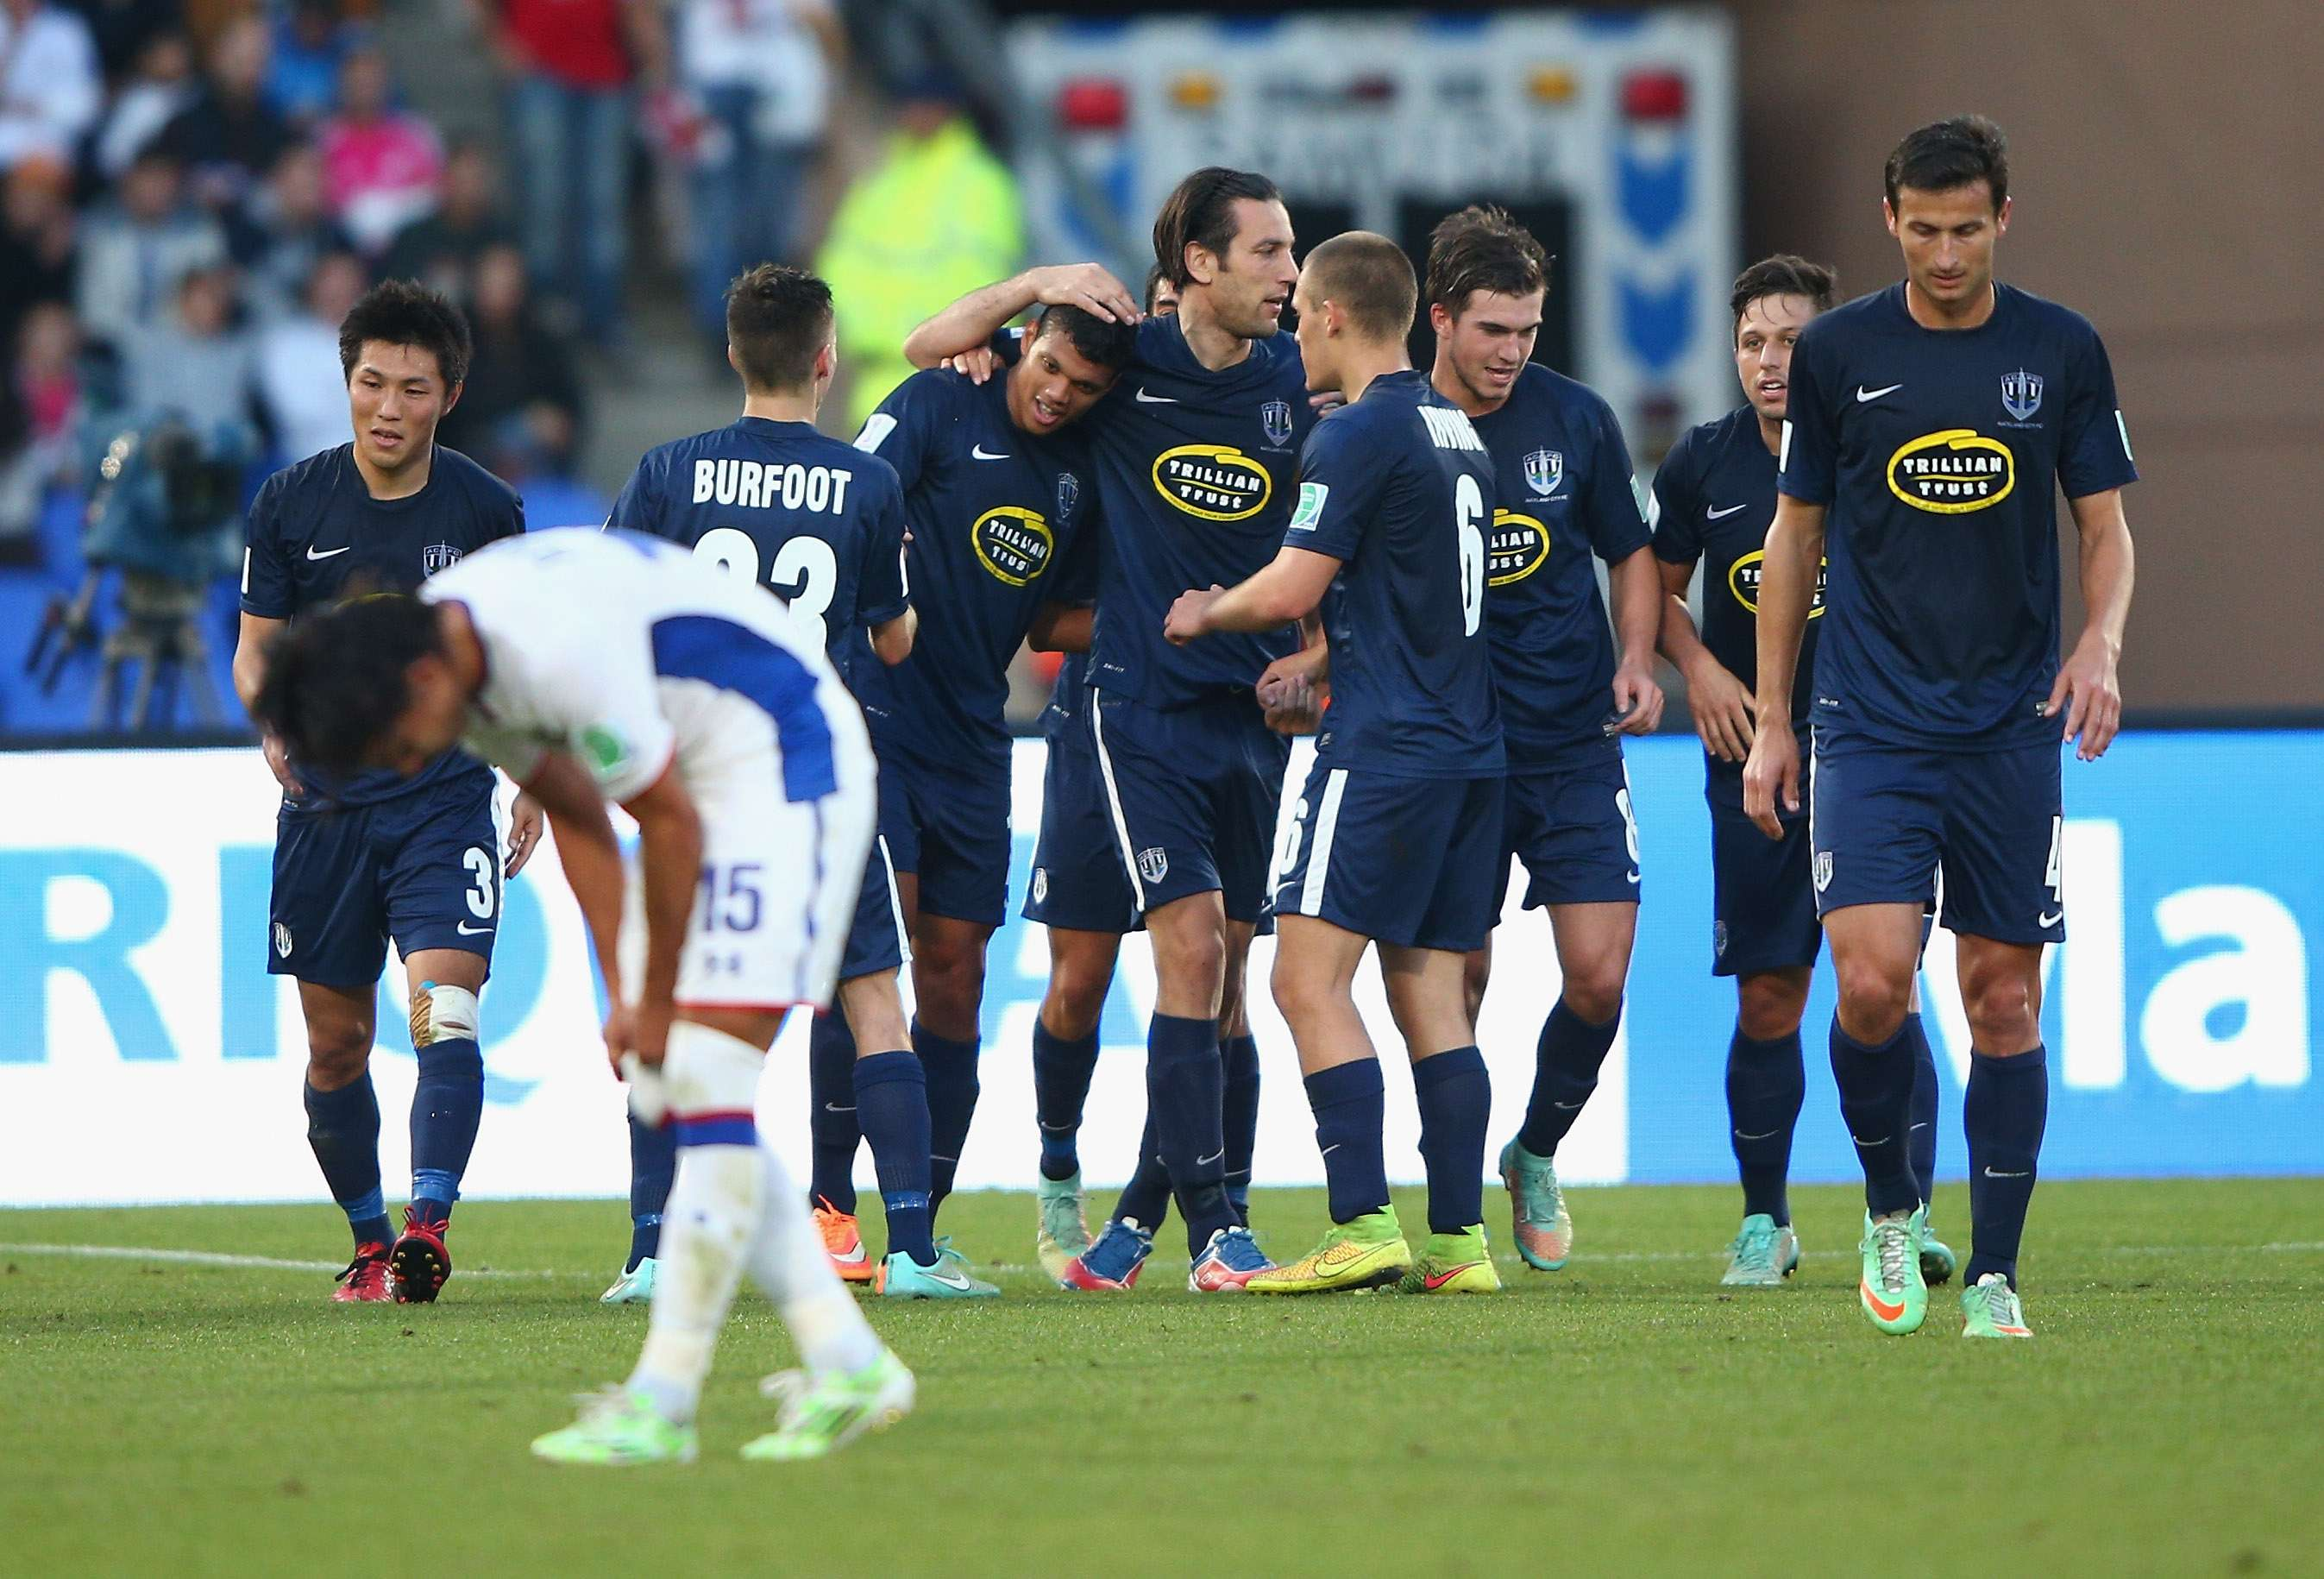 Auckland City se impone a Cruz Azul en penaltis. Foto: Getty Images